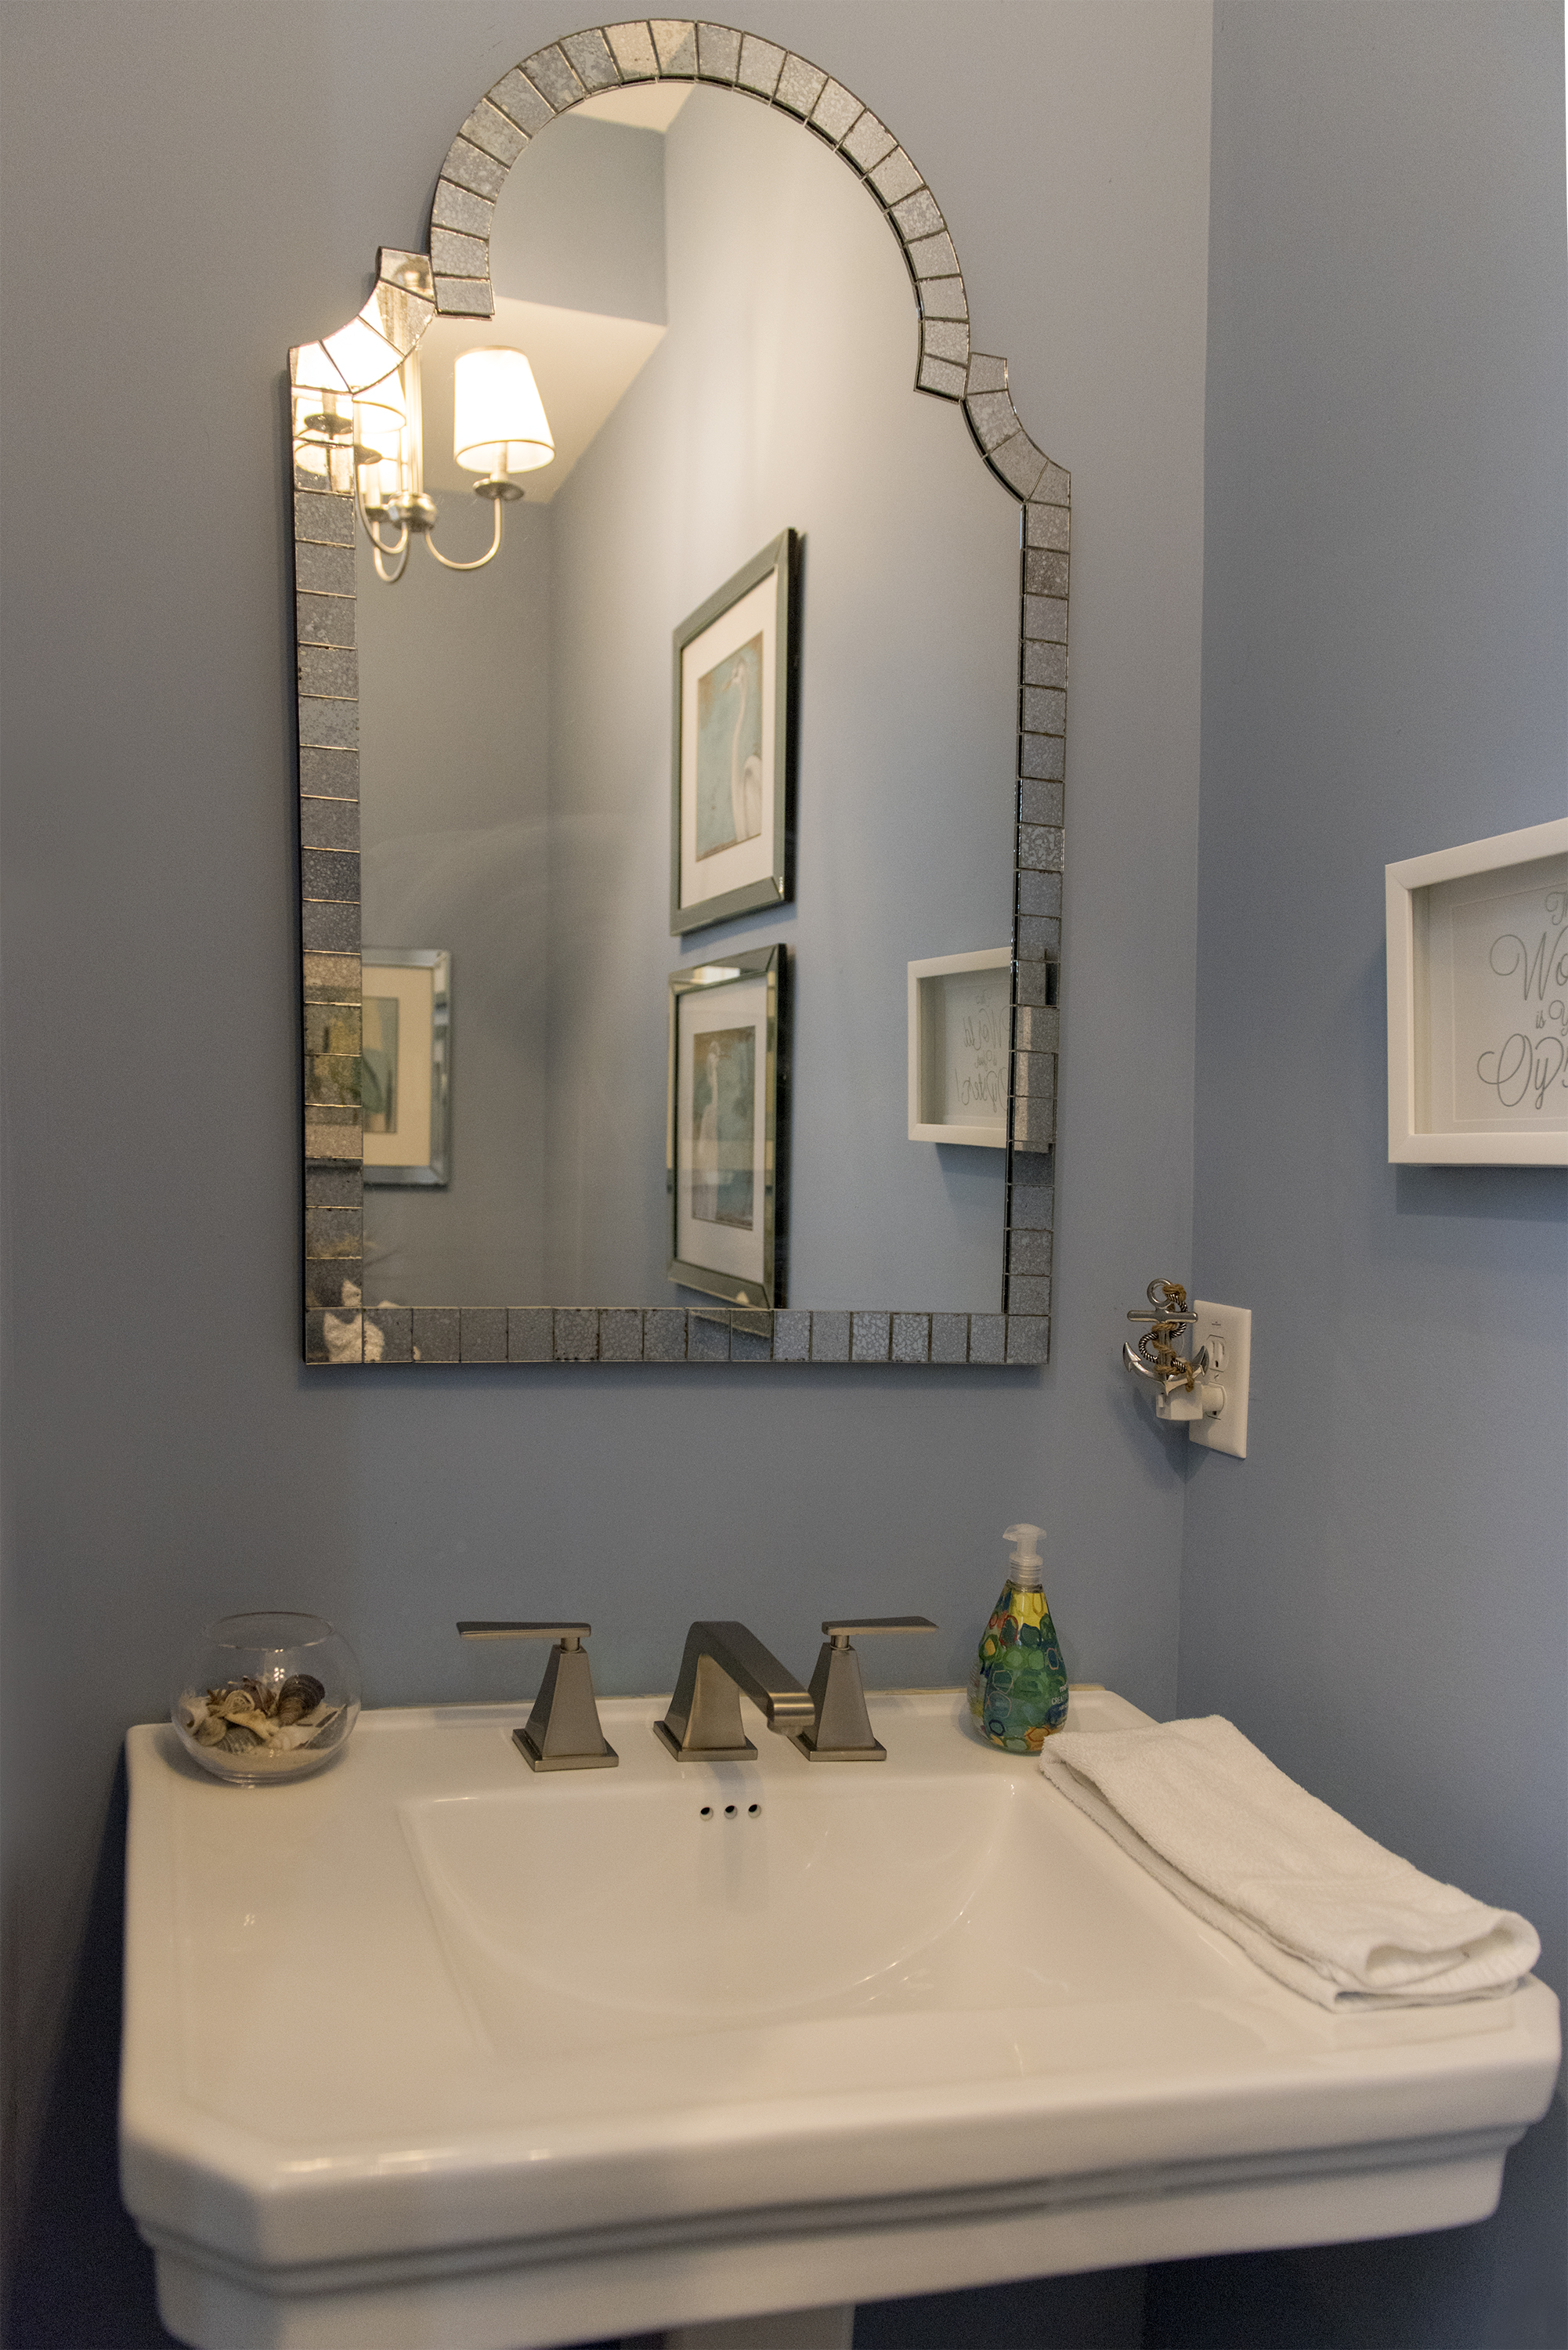 Off the great room is the powder bathroom.